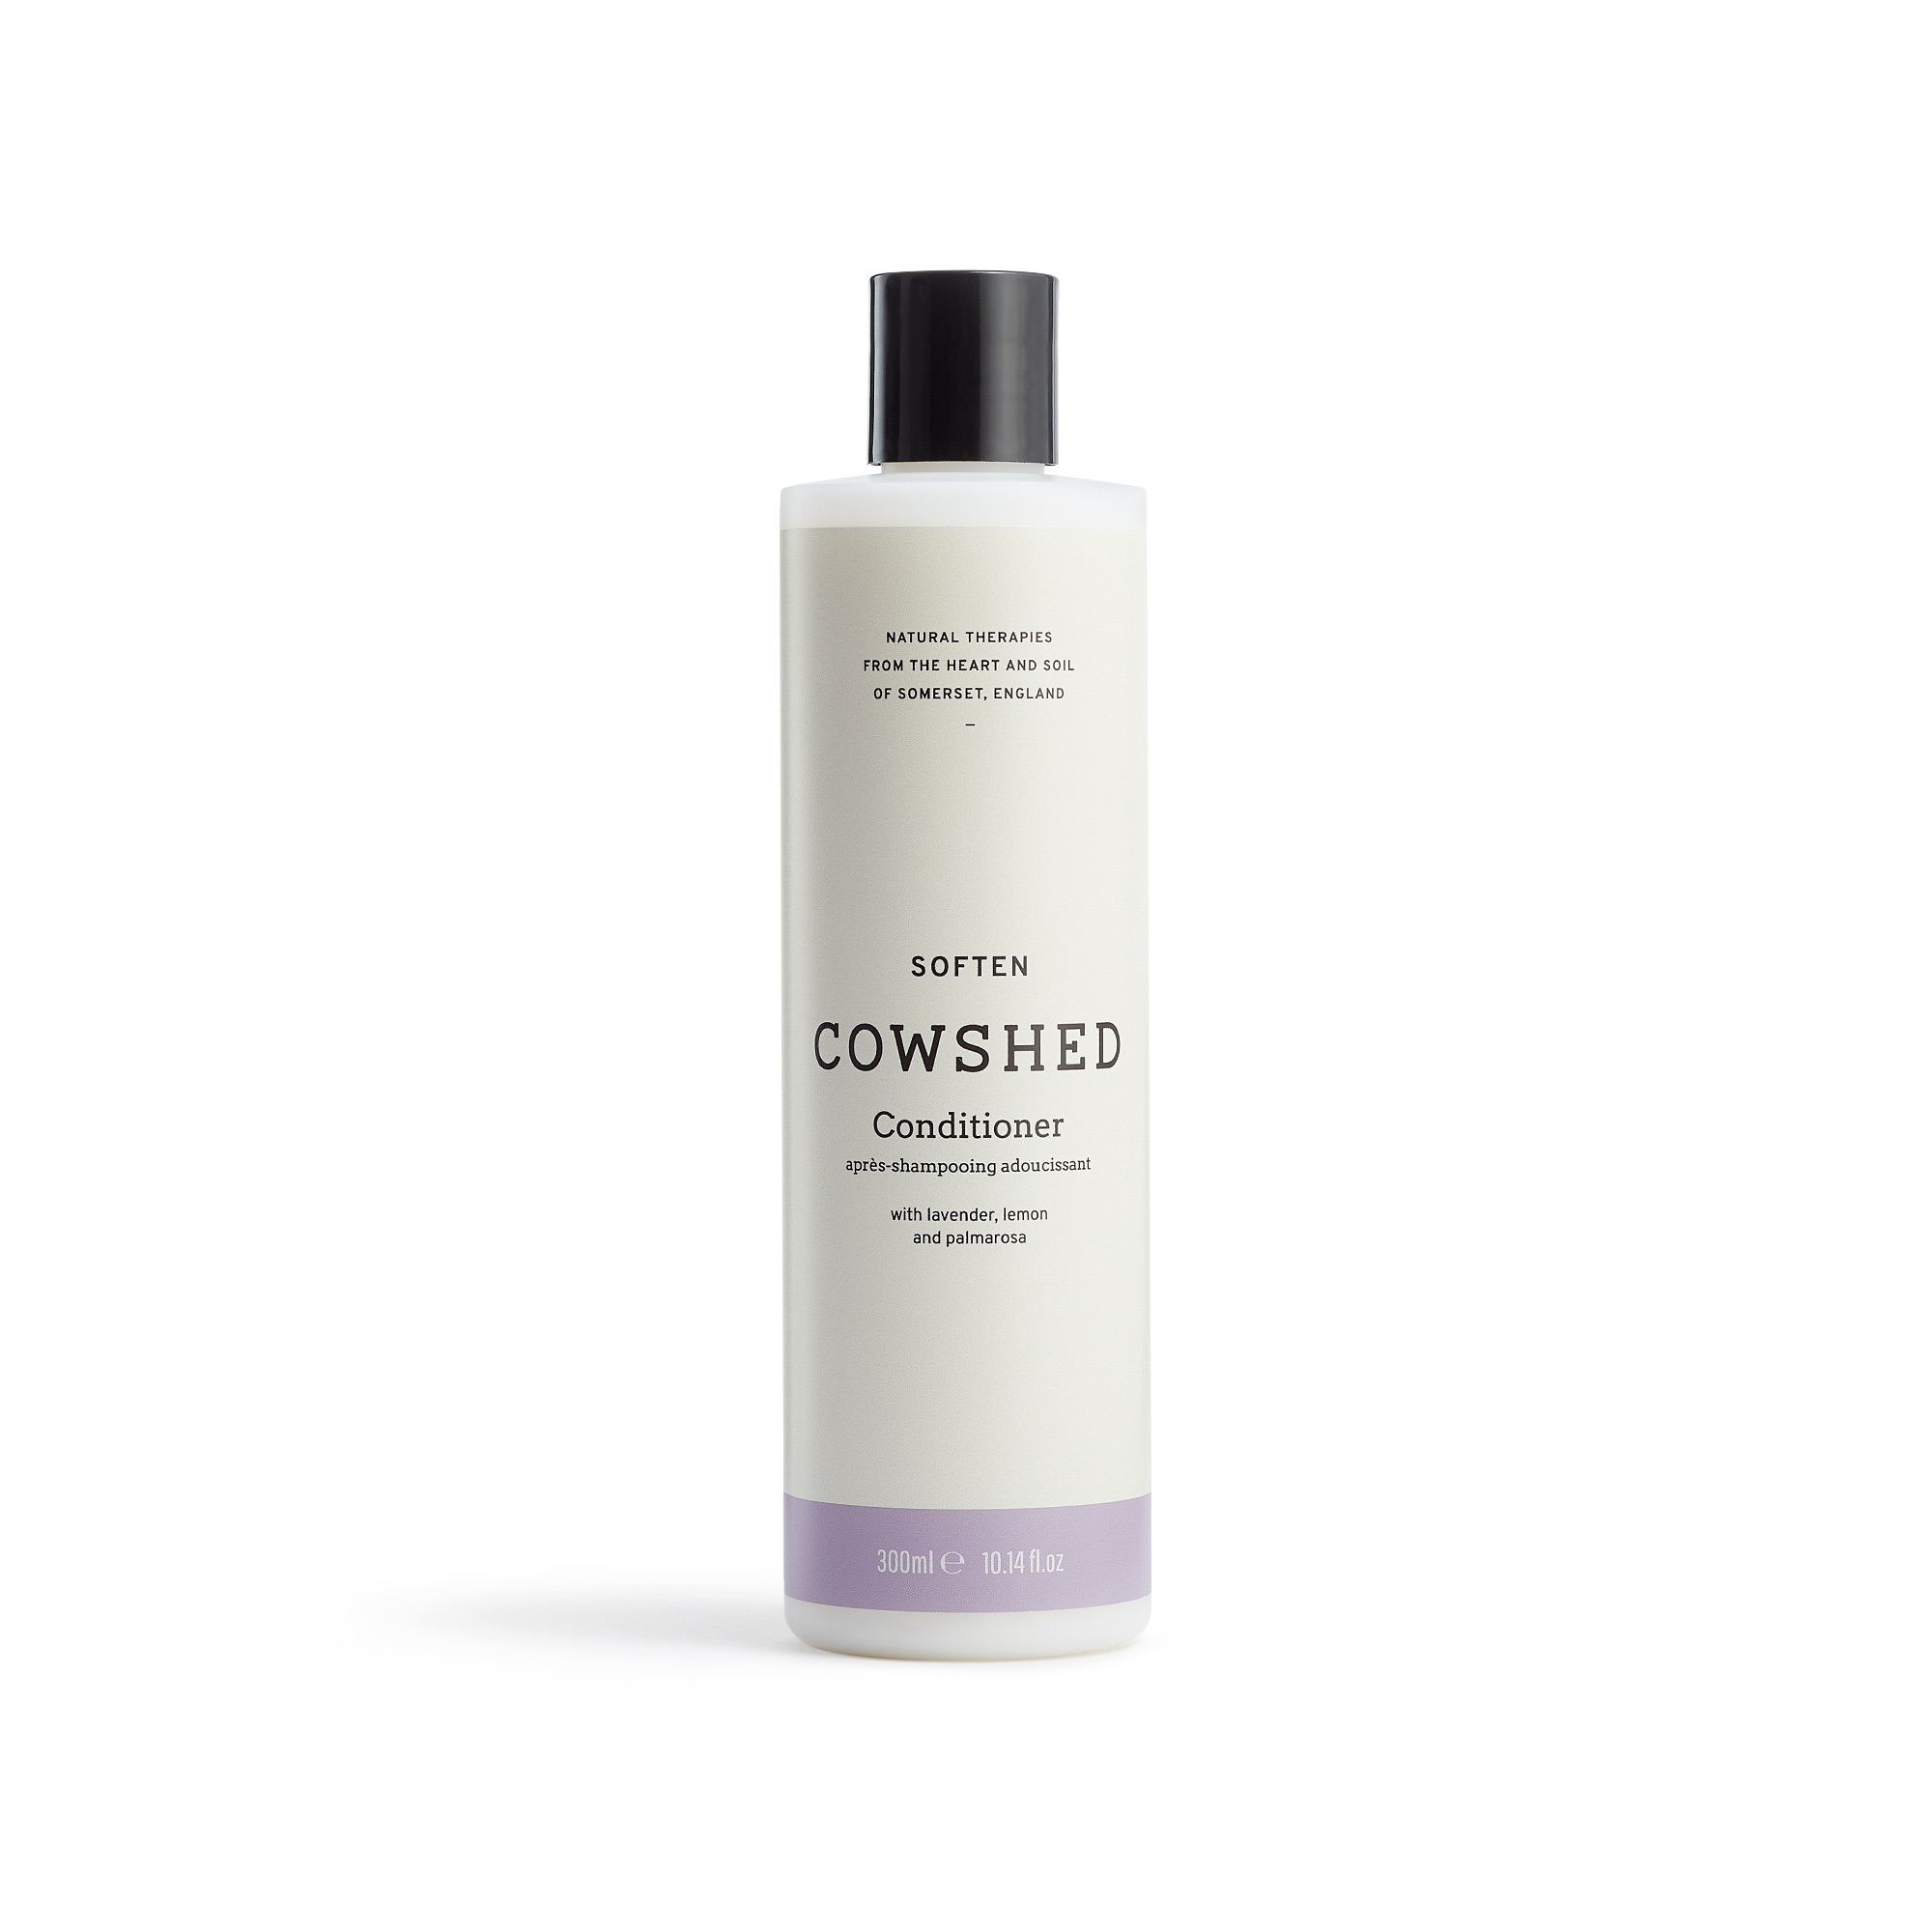 Cowshed SOFTEN Conditioner (Saucy Cow Conditioner) 10.5oz (300ml)